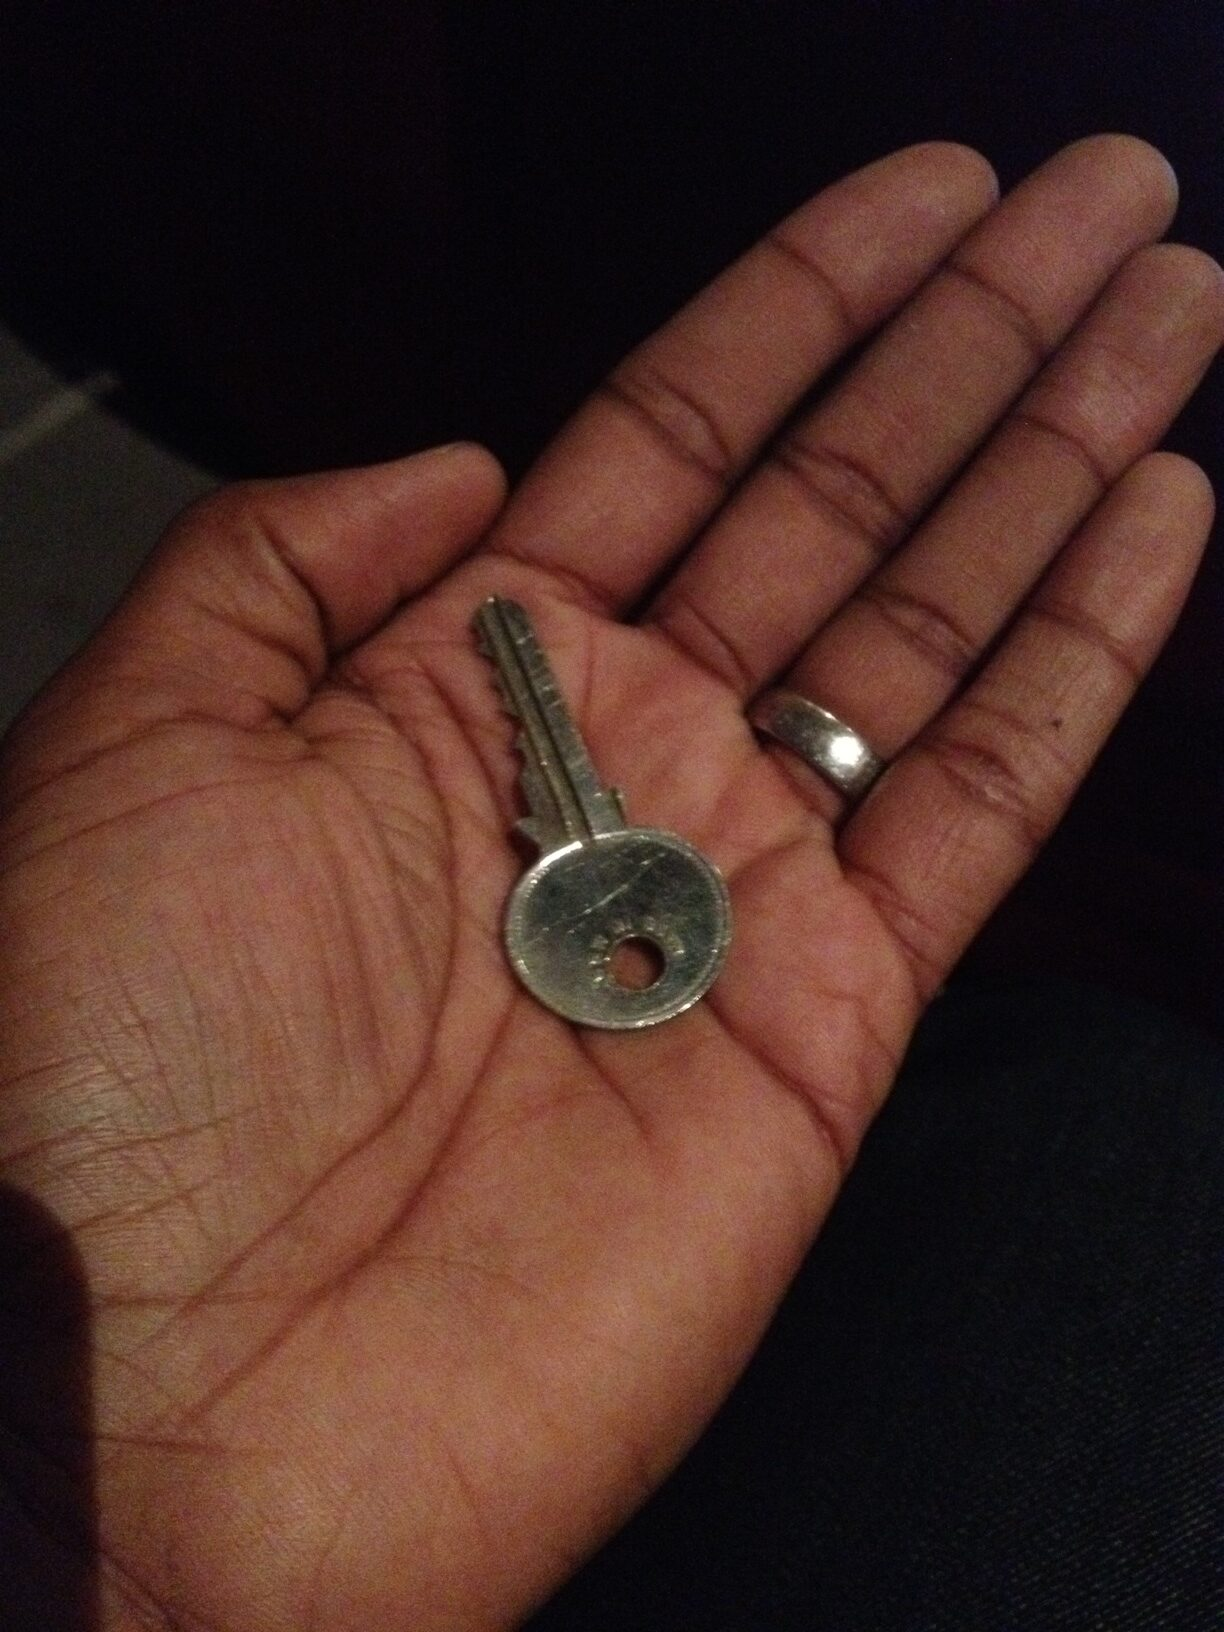 Closing day - key finally in hand!